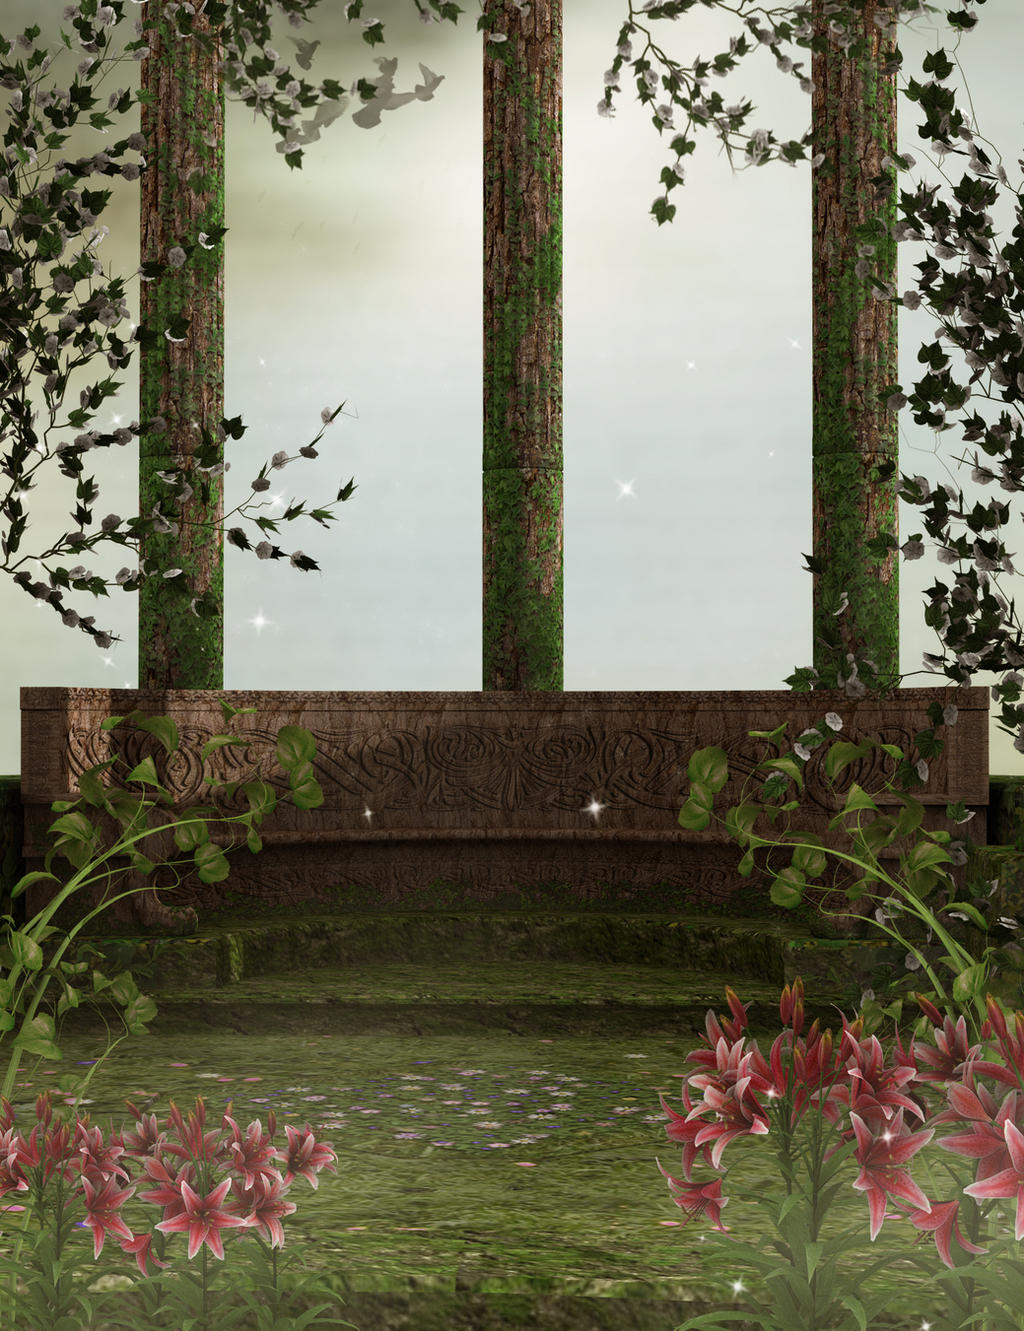 Enchanted balcony background by everildwolfden on deviantart for Balcony view wallpaper